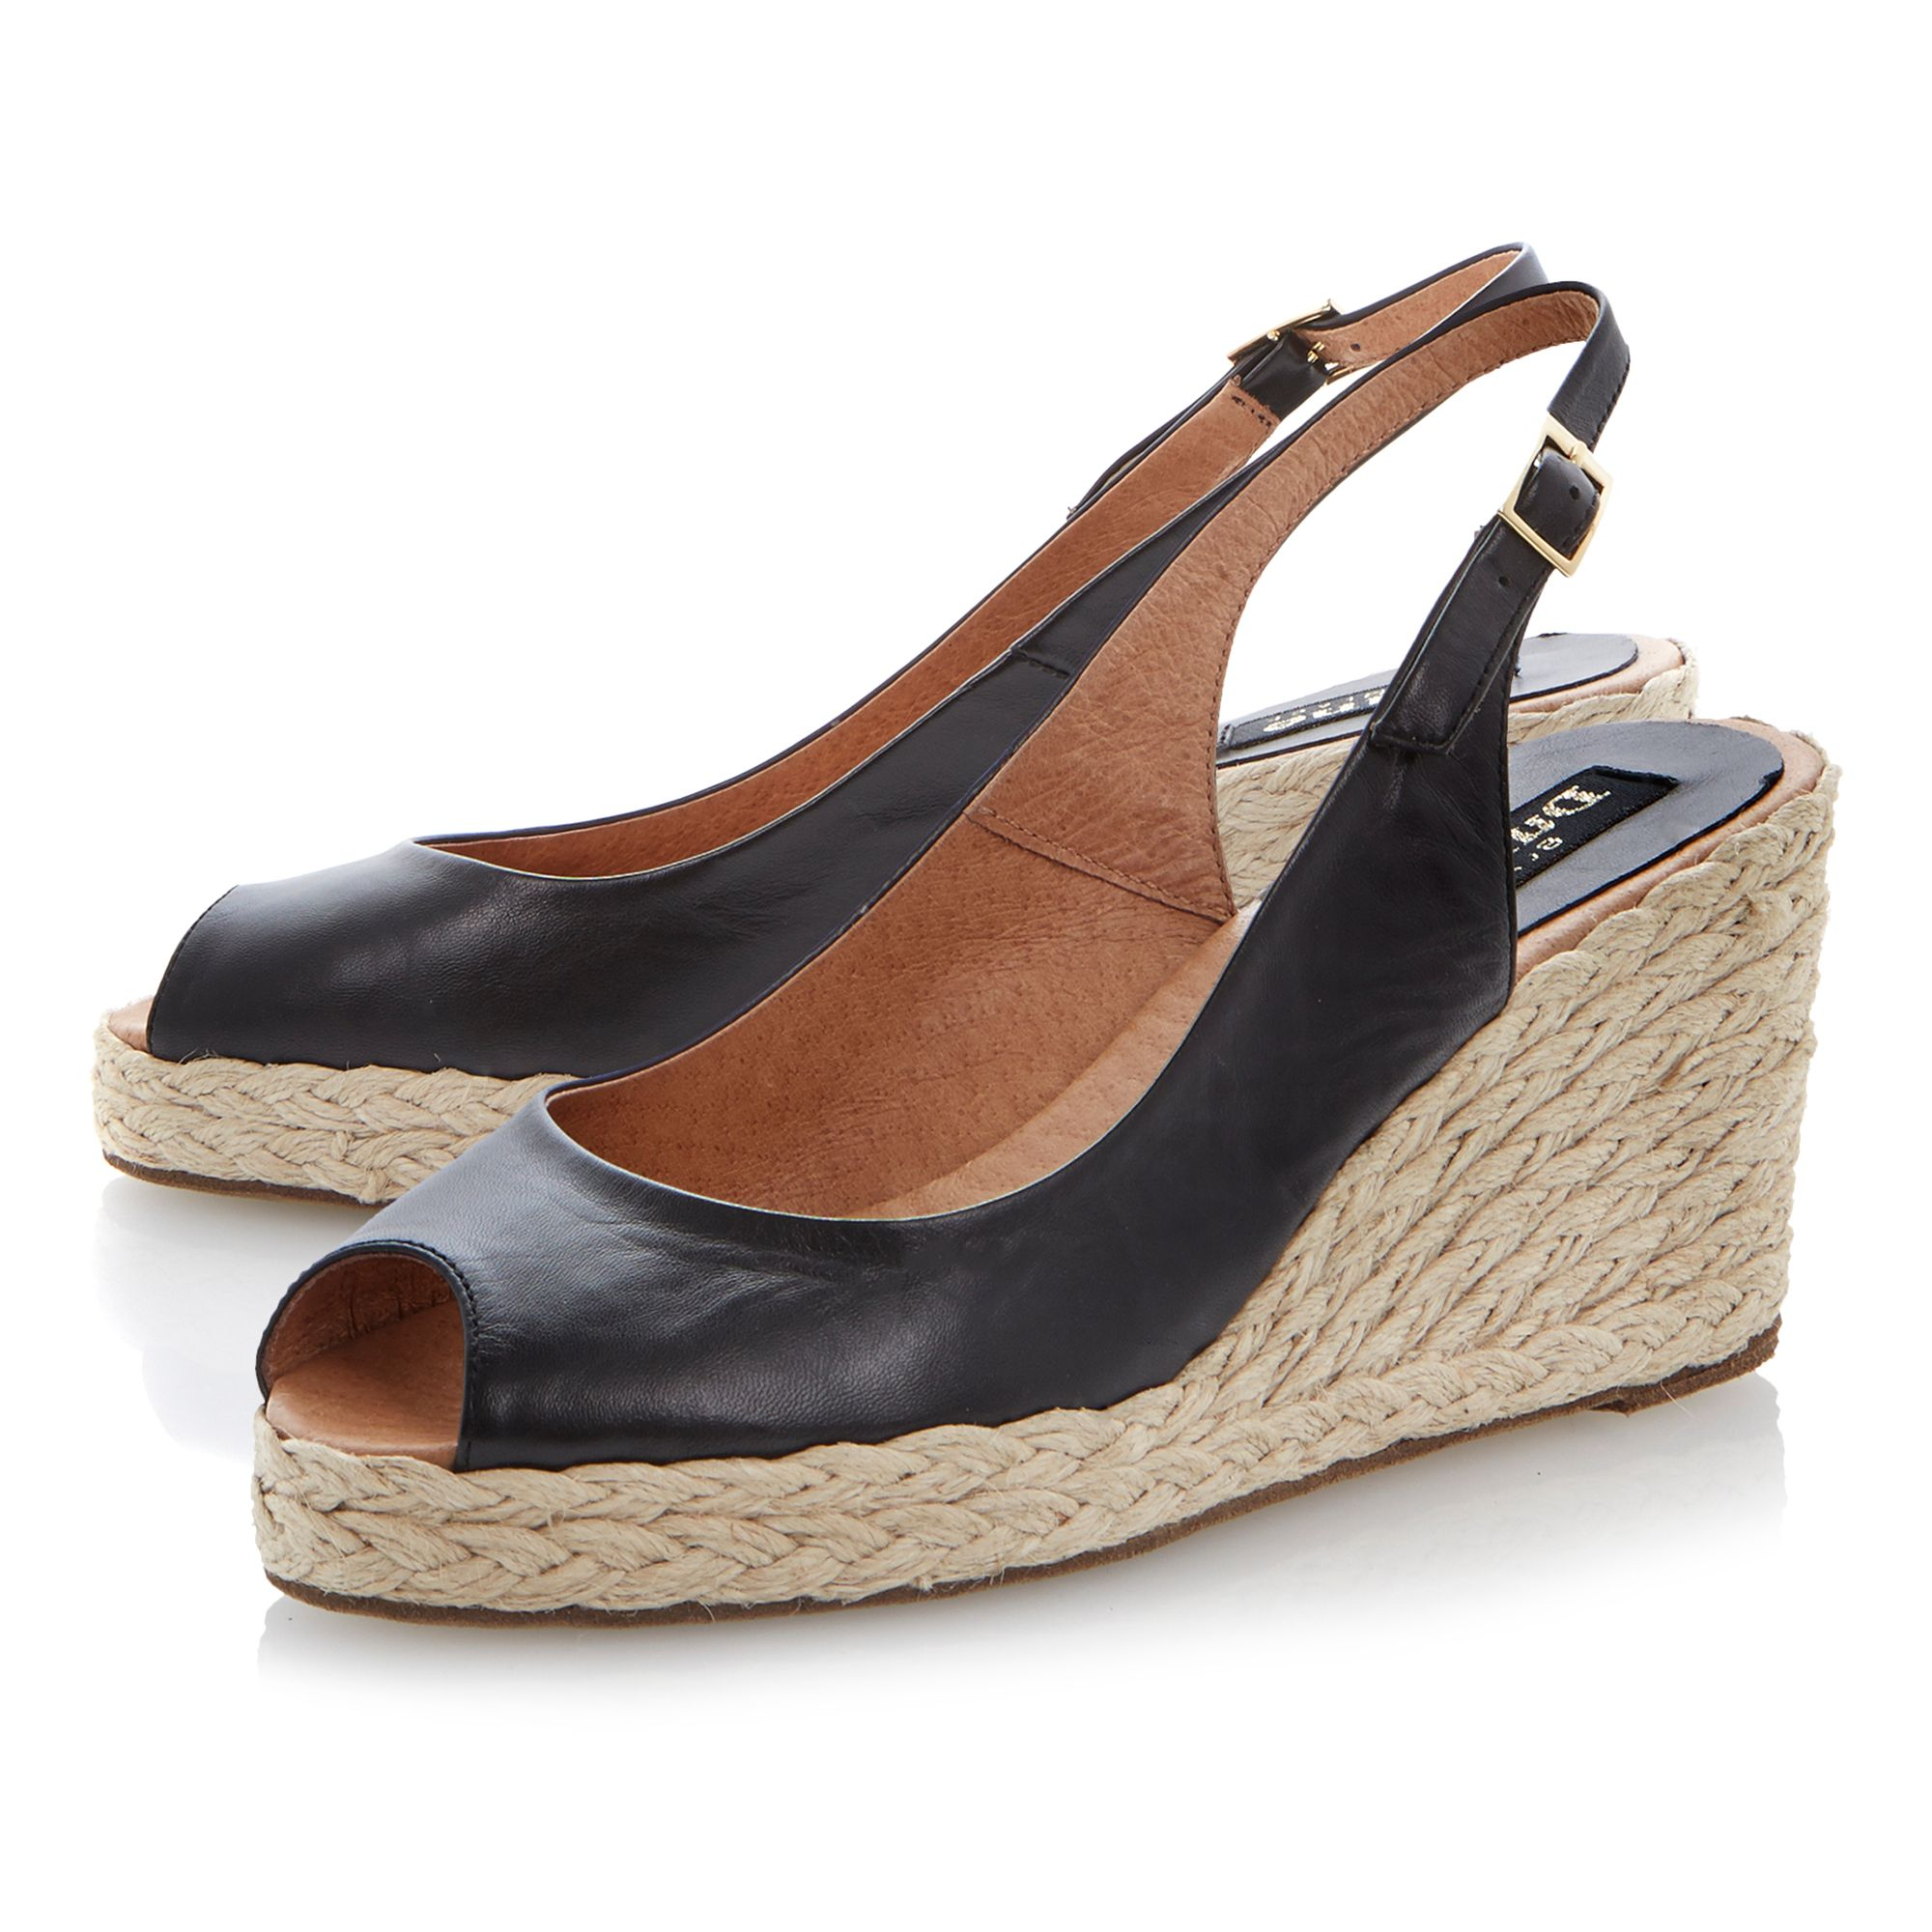 Lara leather peeptoe wedge espadrilles